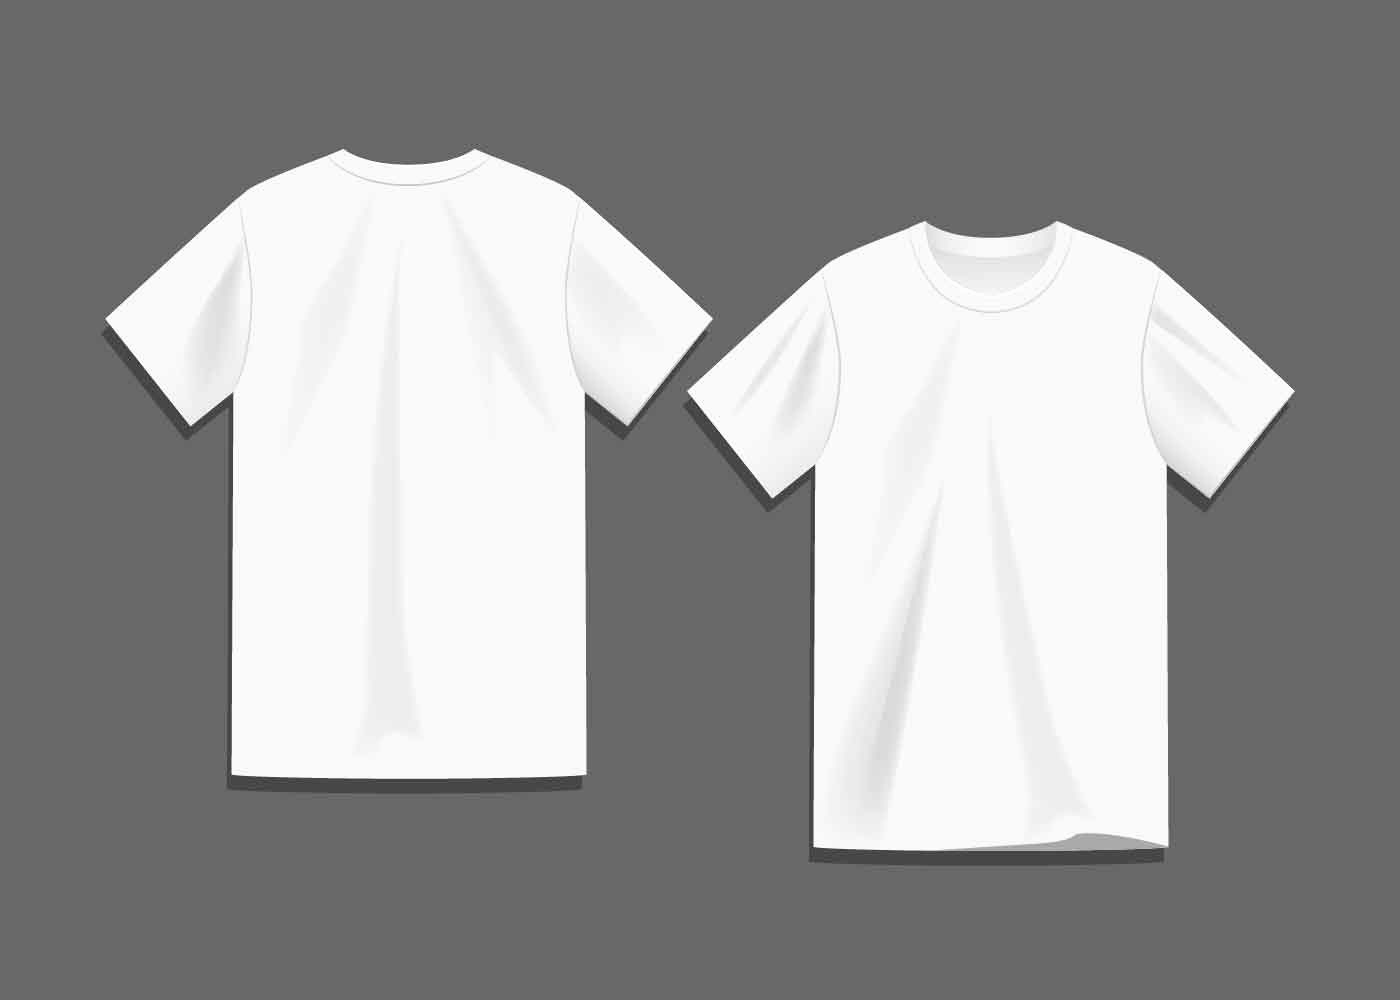 T Shirt Template Vector Luxury White Blank T Shirt Template Vector Download Free Vector